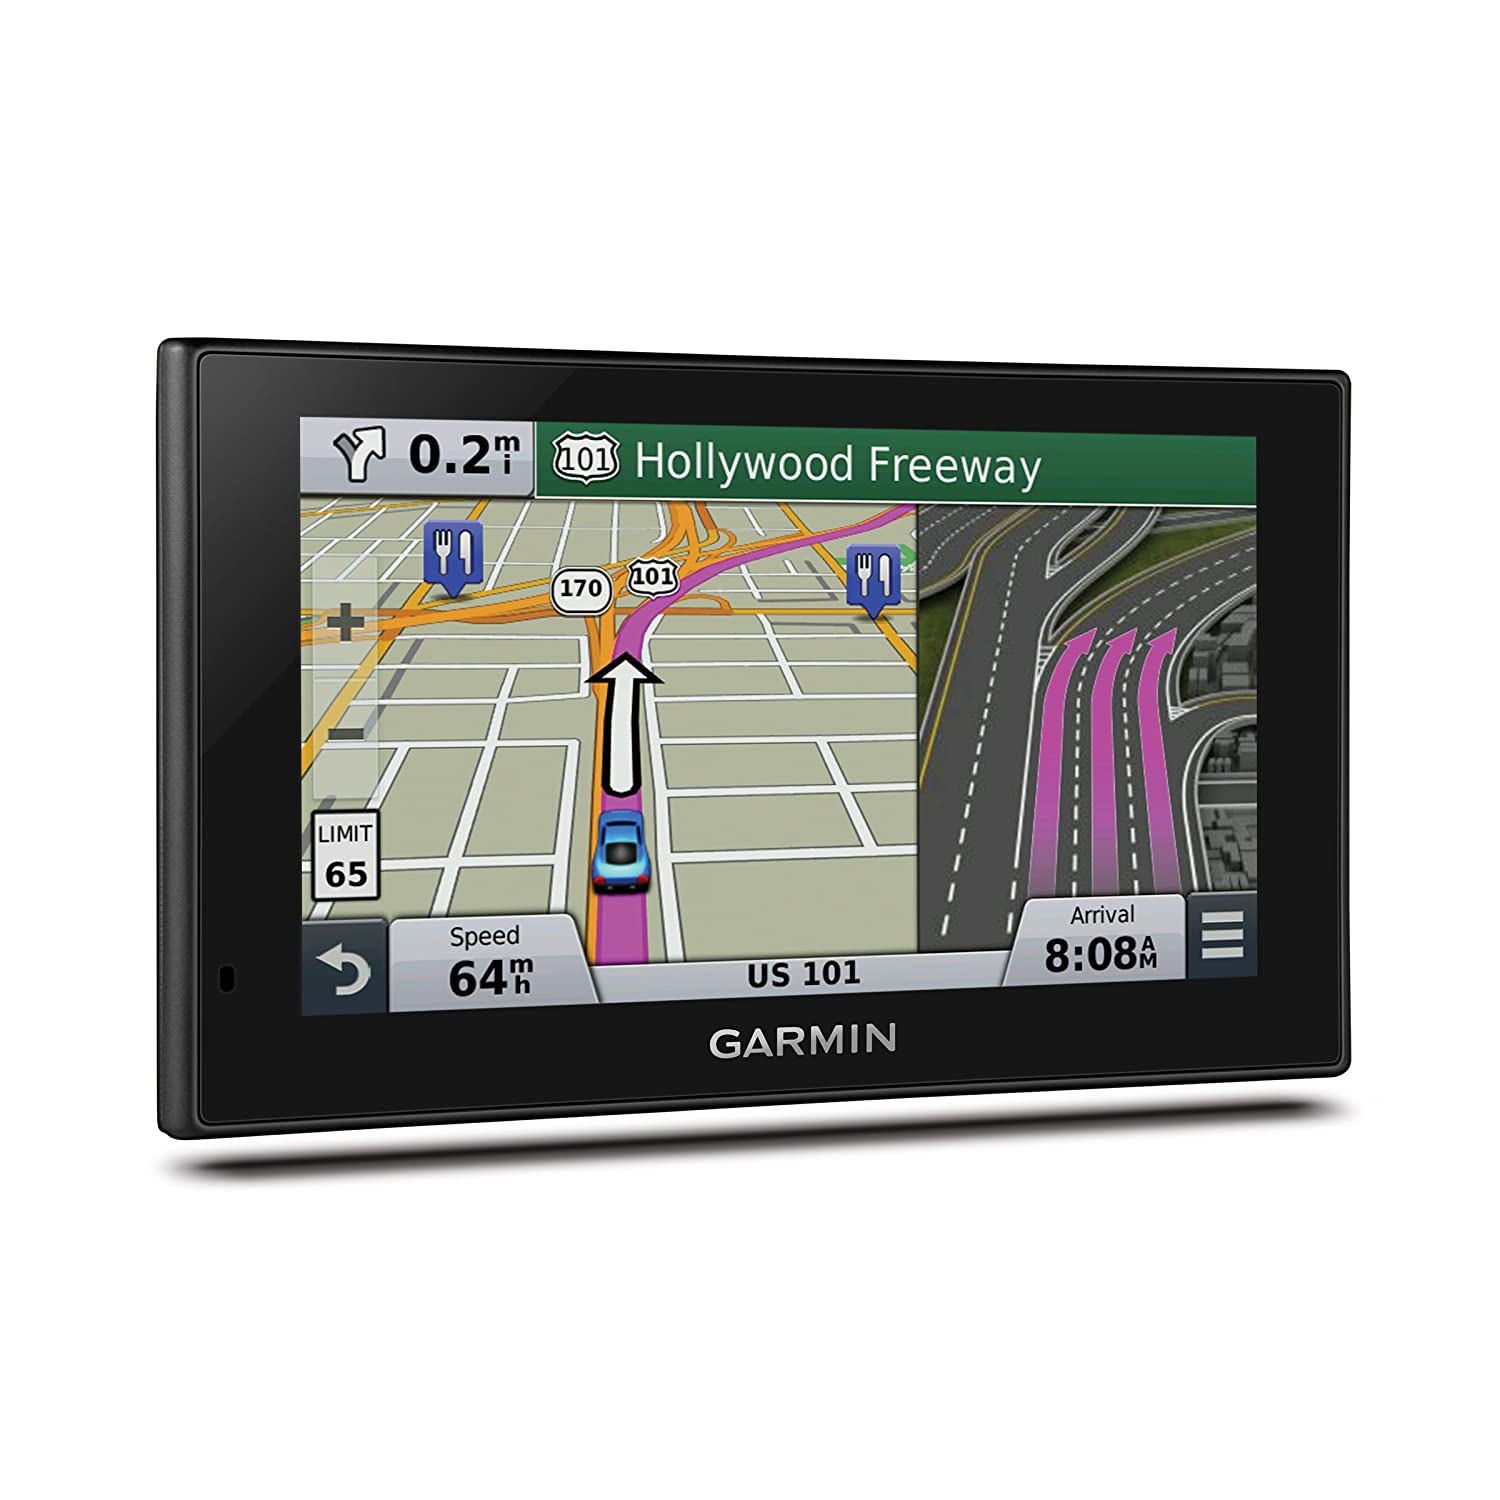 Garmin nüvi 2789LMT 7-Inch Portable Bluetooth Vehicle GPS